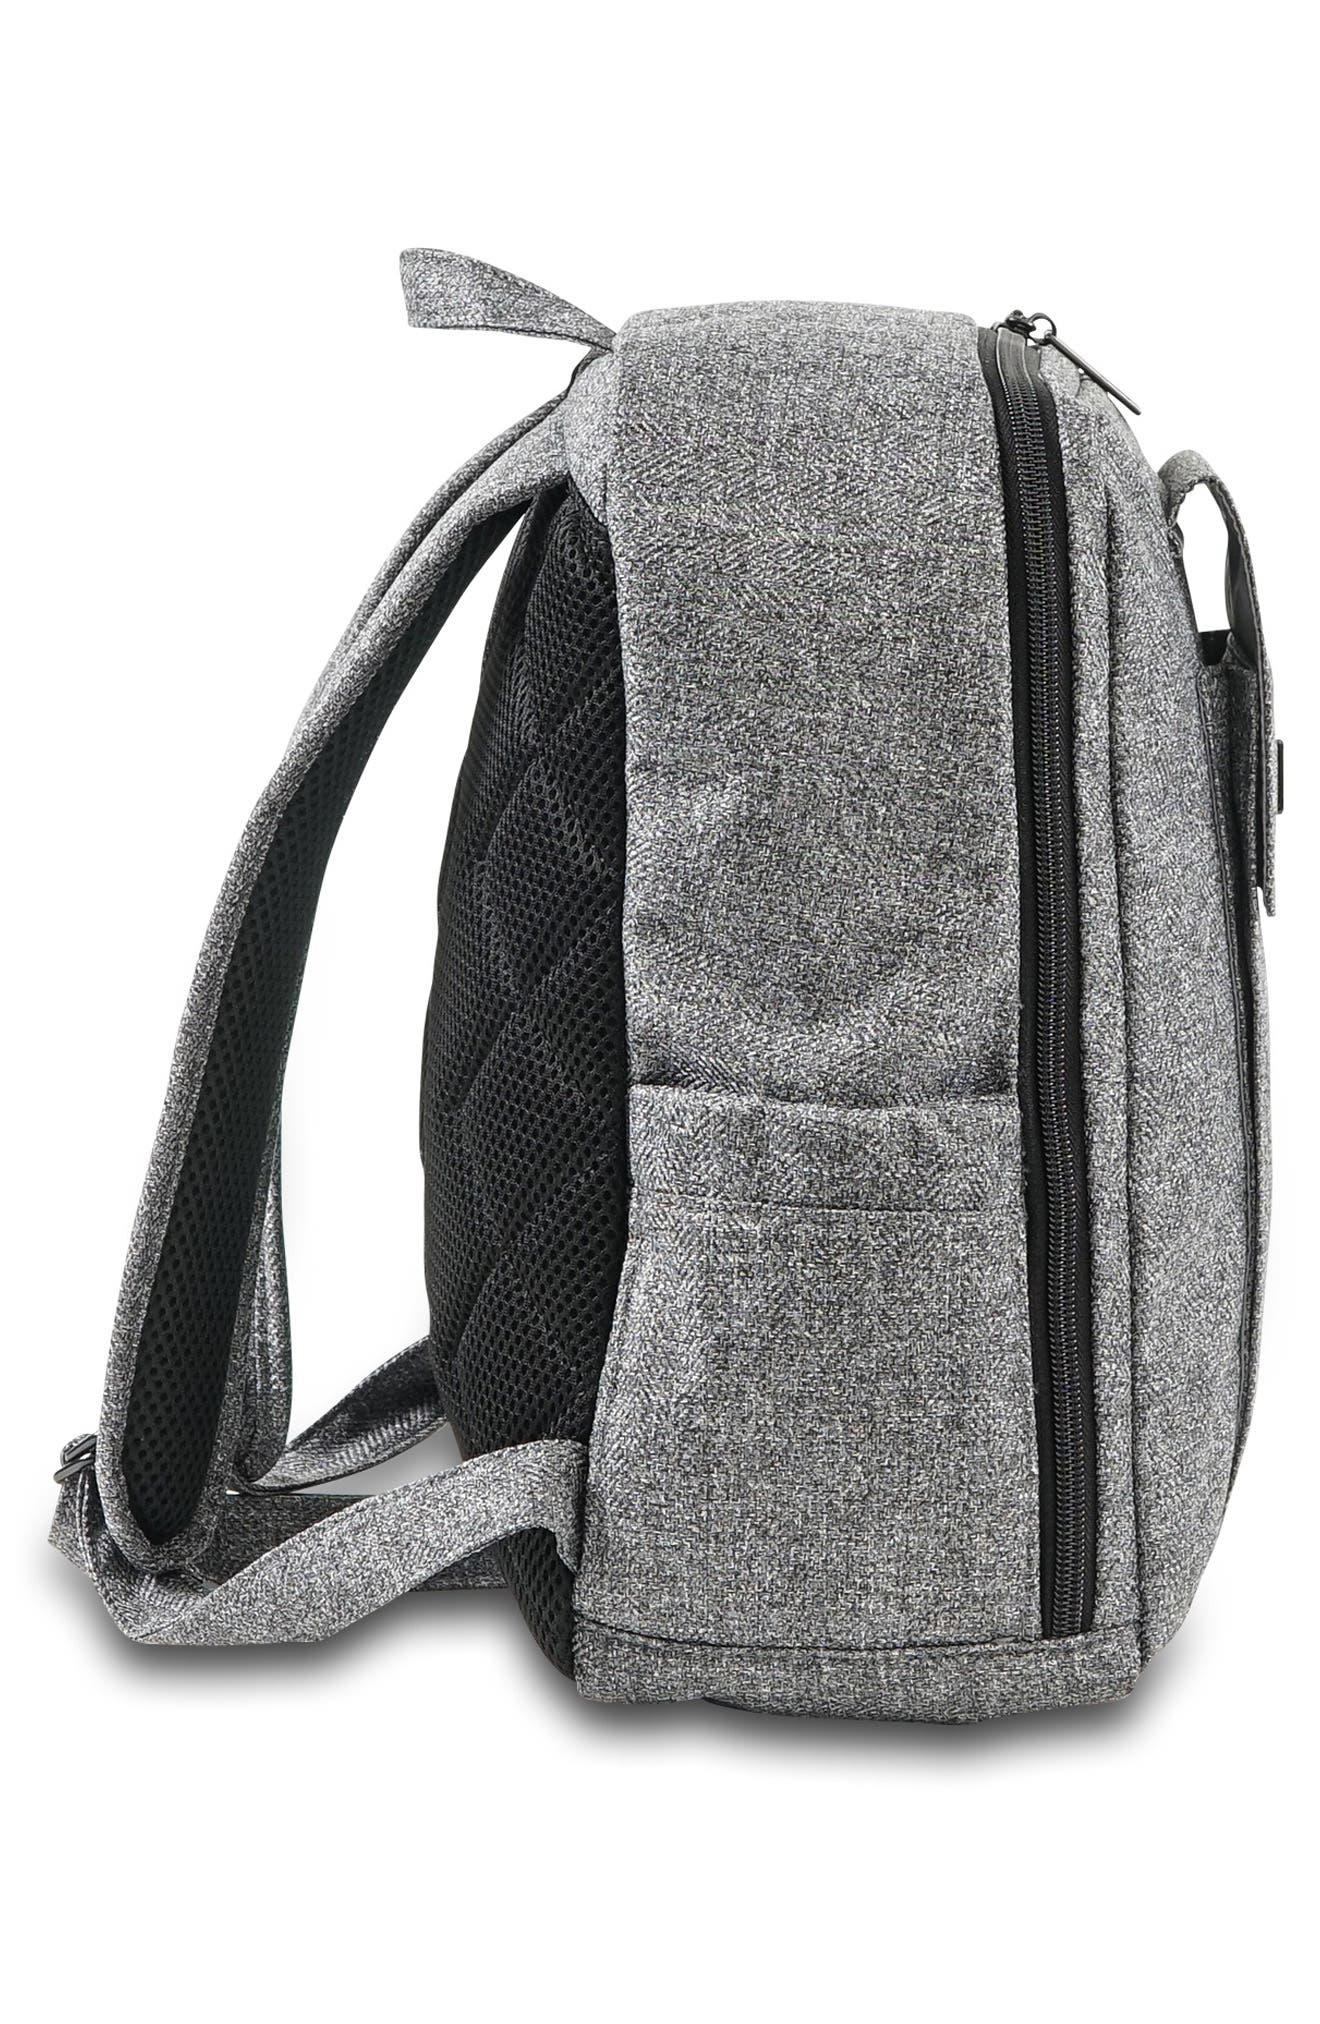 'Mini Be - Onyx Collection' Backpack,                             Alternate thumbnail 4, color,                             GRAY MATTER